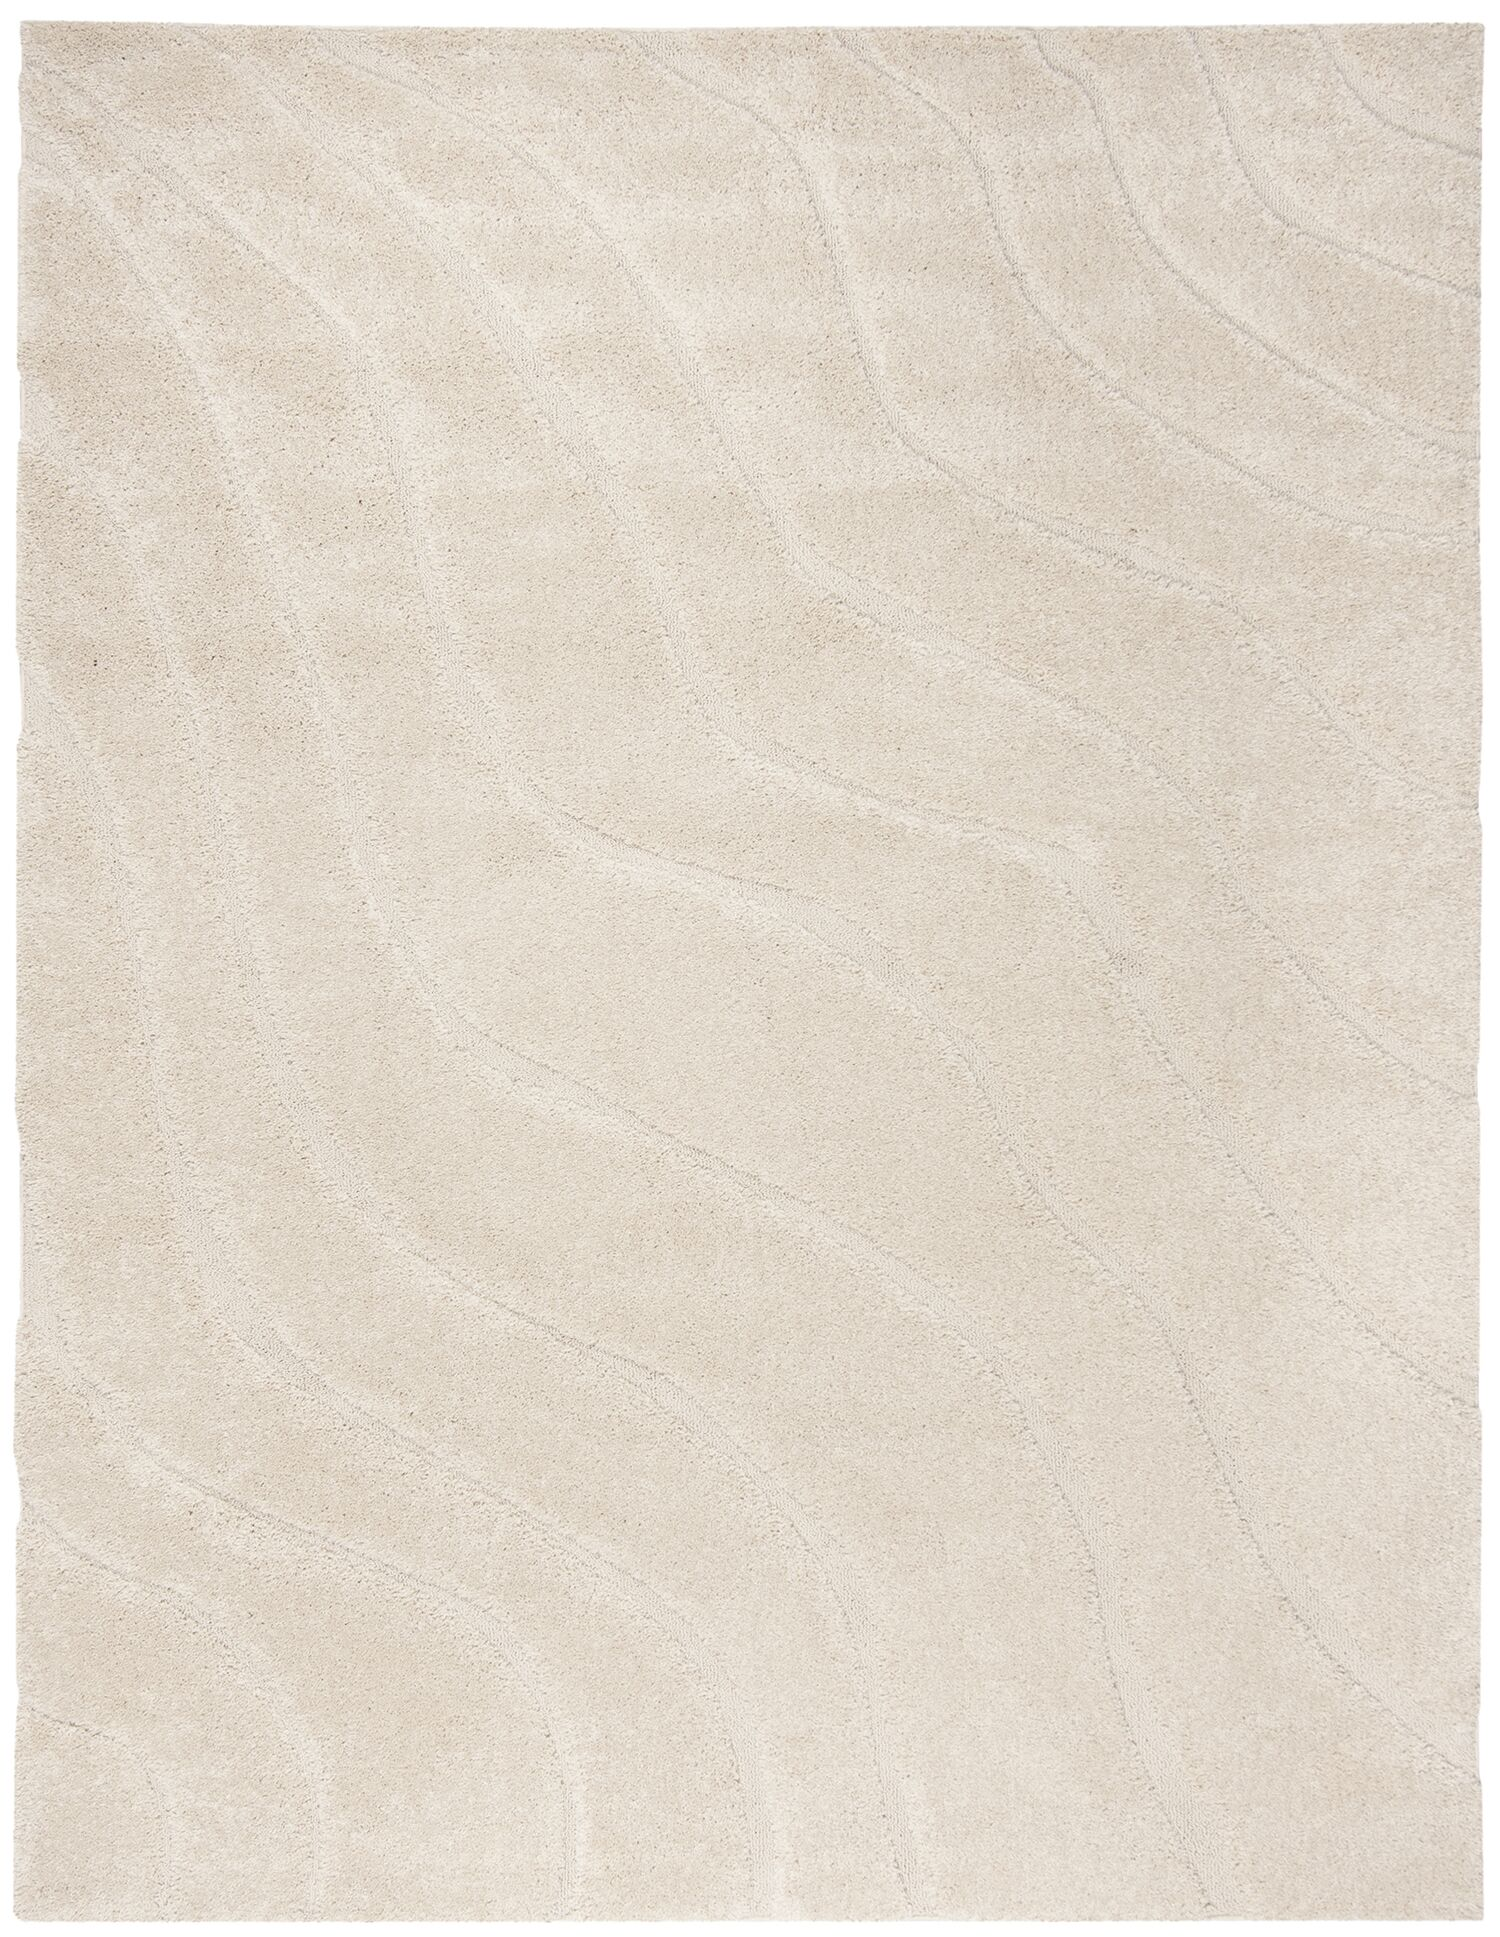 Enrique Cream Area Rug Rug Size: Rectangle 4' x 6'